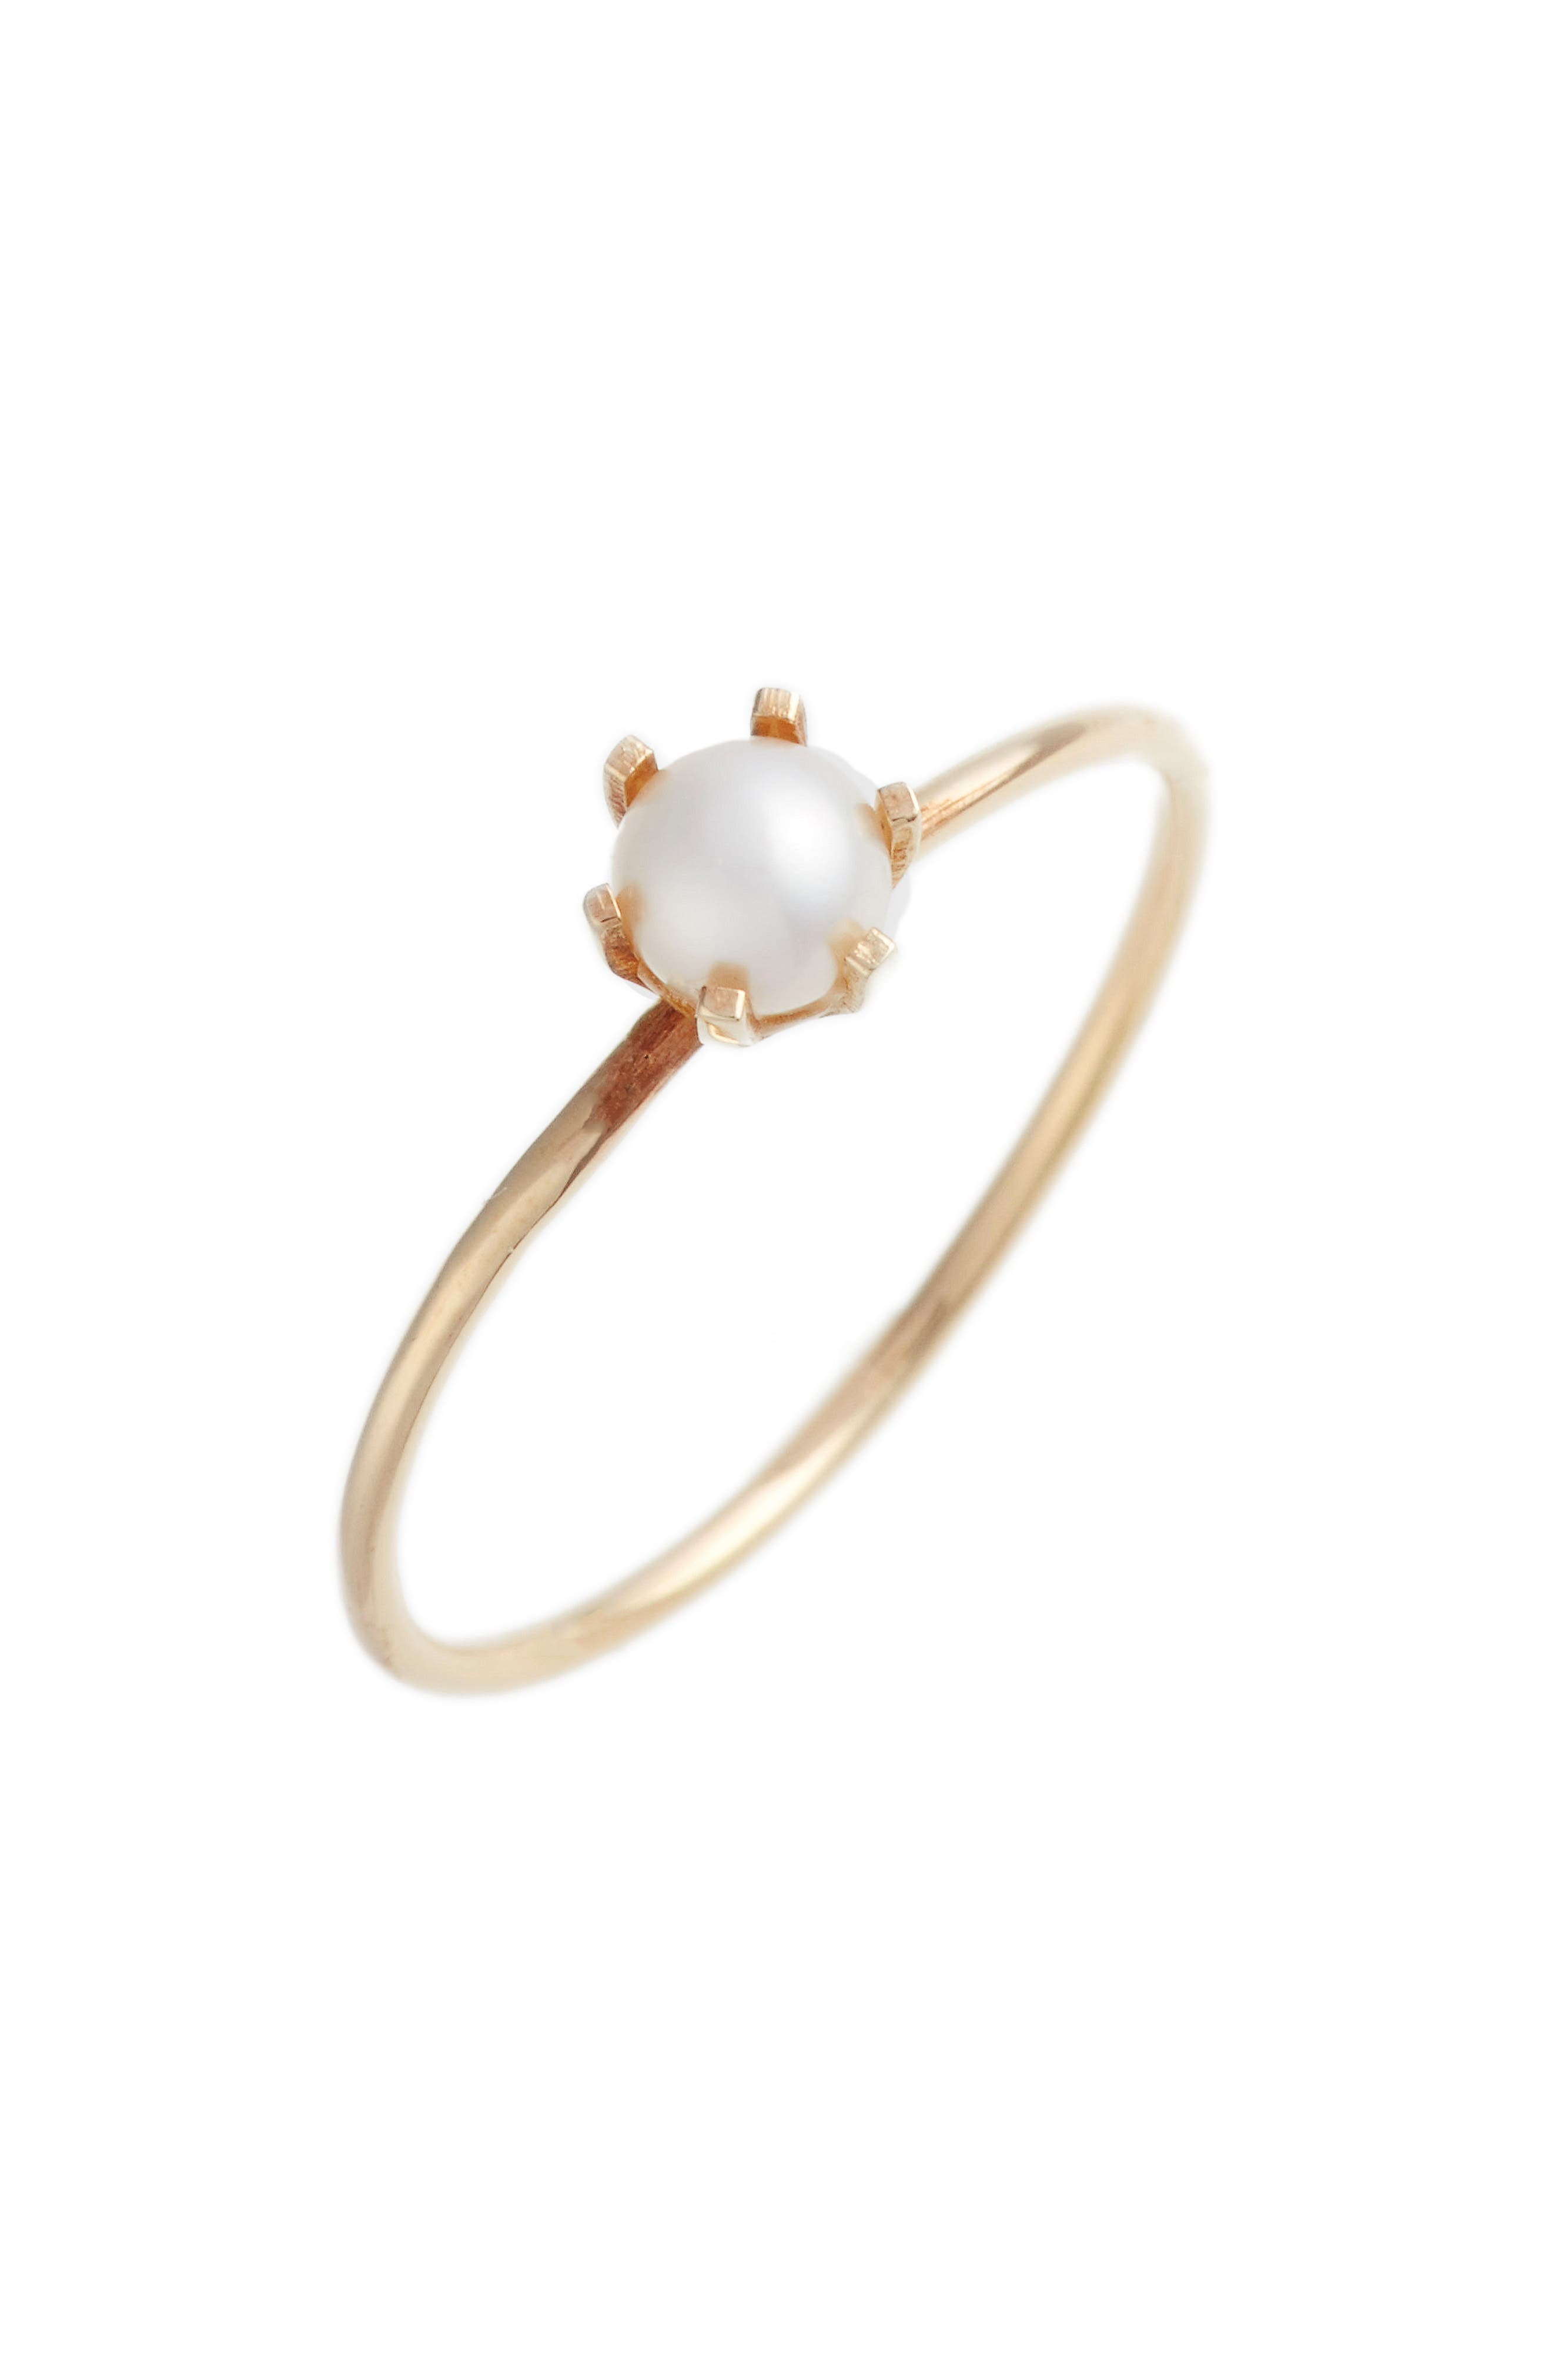 Pearl Solitaire Ring,                         Main,                         color, YELLOW GOLD/ WHITE PEARL